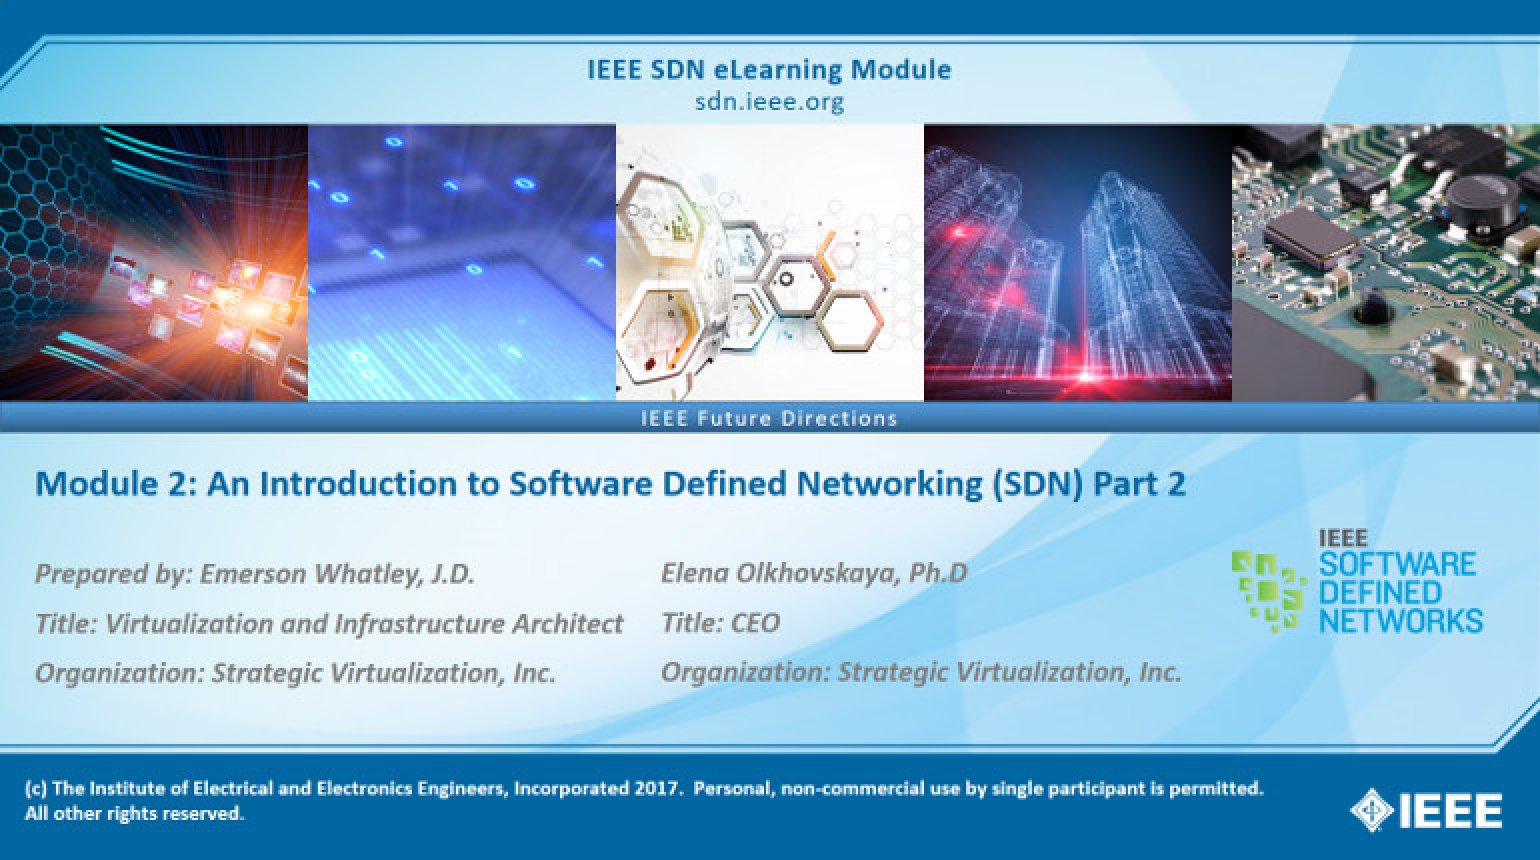 ONOS Module 2: An Introduction to Software Defined Networking (SDN) Part 2